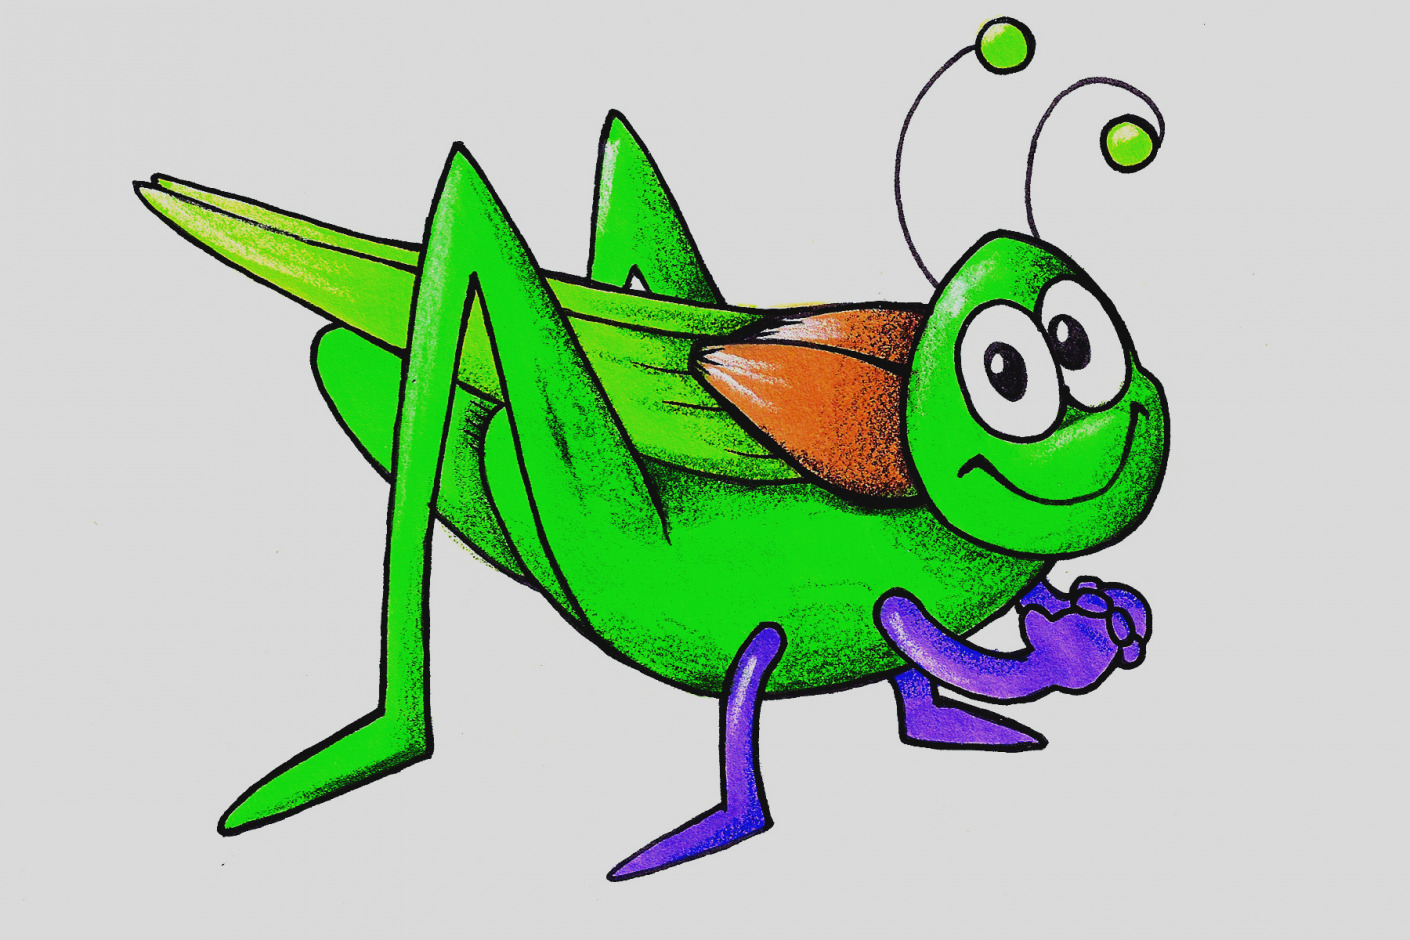 Bugs clipart insect. Images of clip art